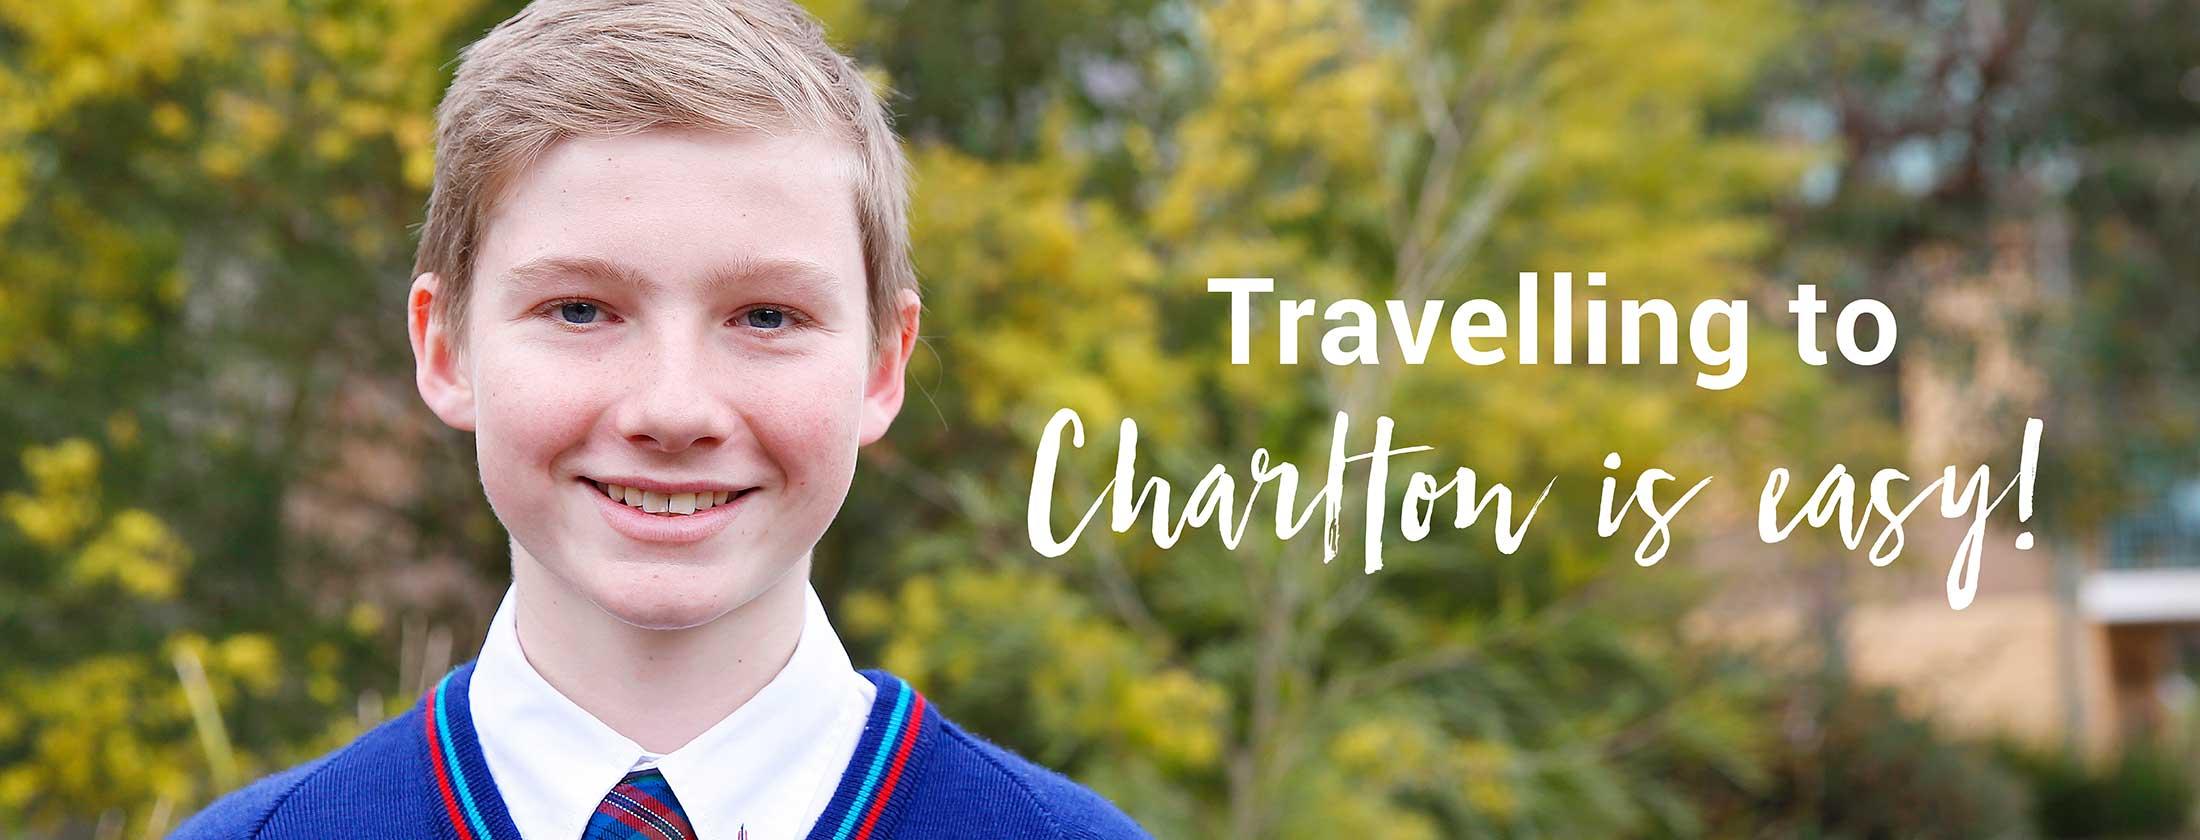 travel public transport bus buses charlton christian college